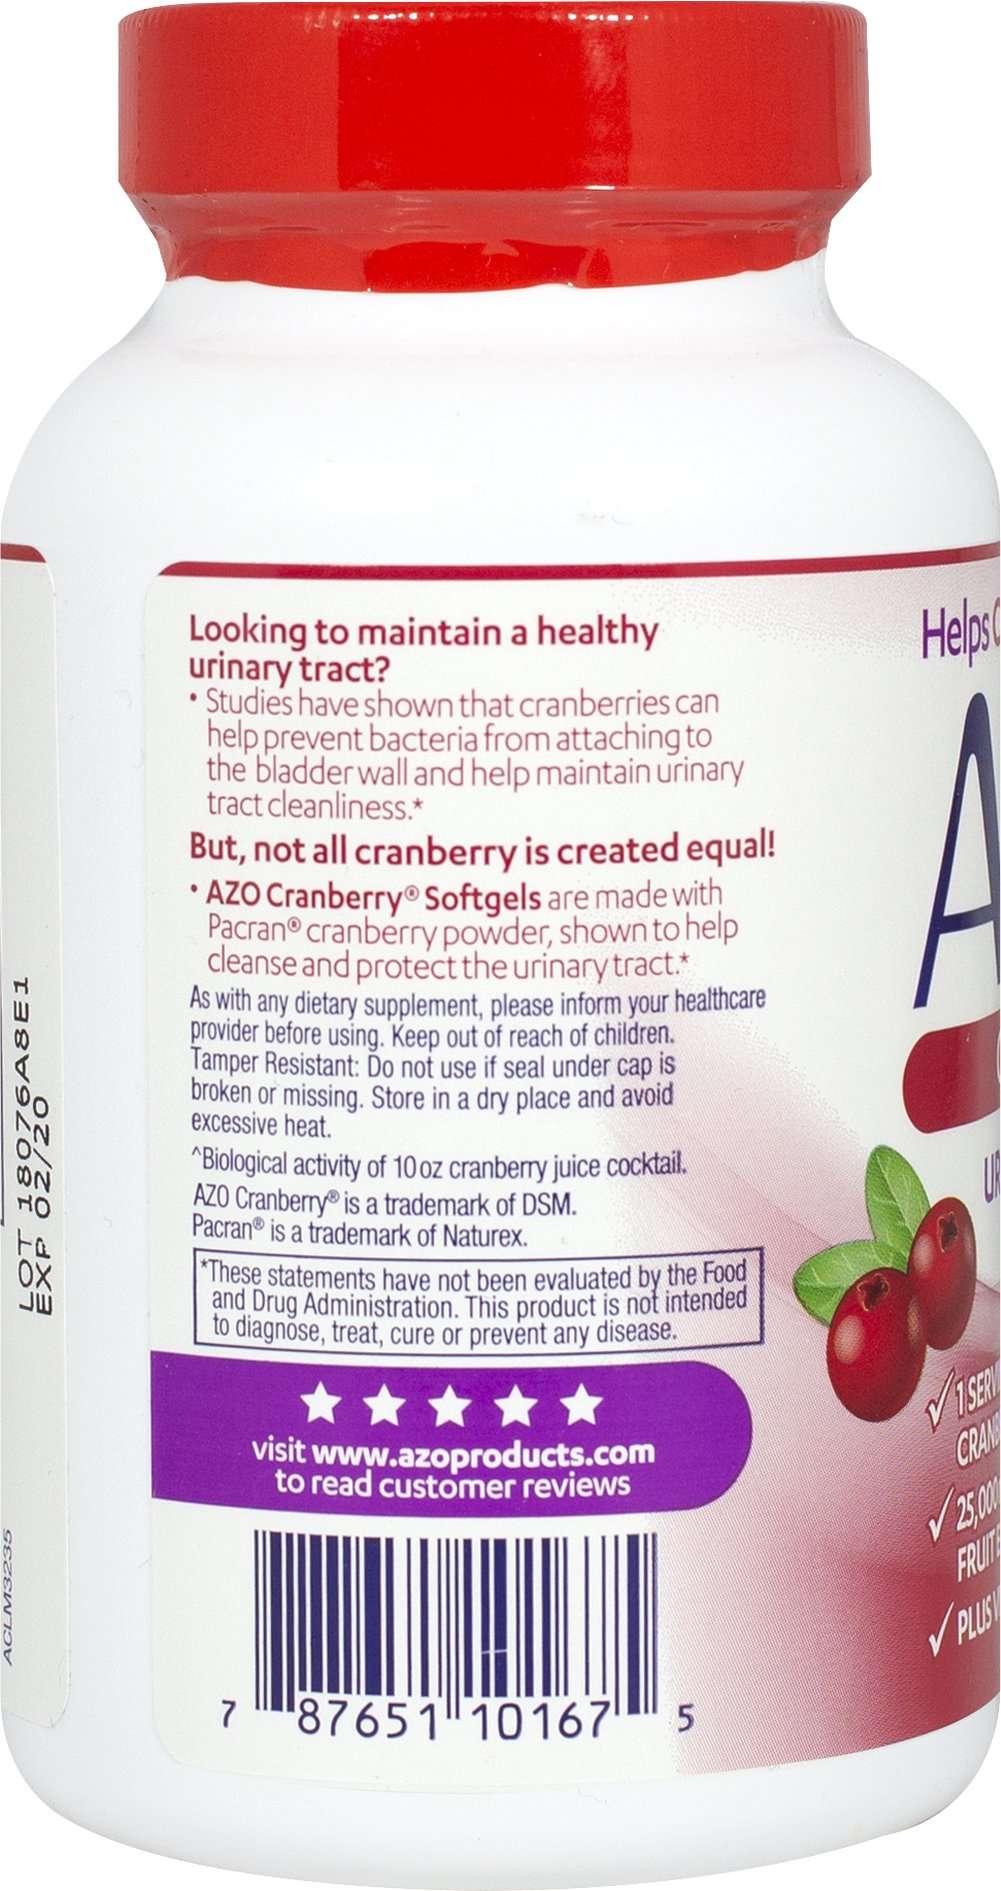 Cranberry Urinary Tract Health Thumbnail Alternate Bottle View